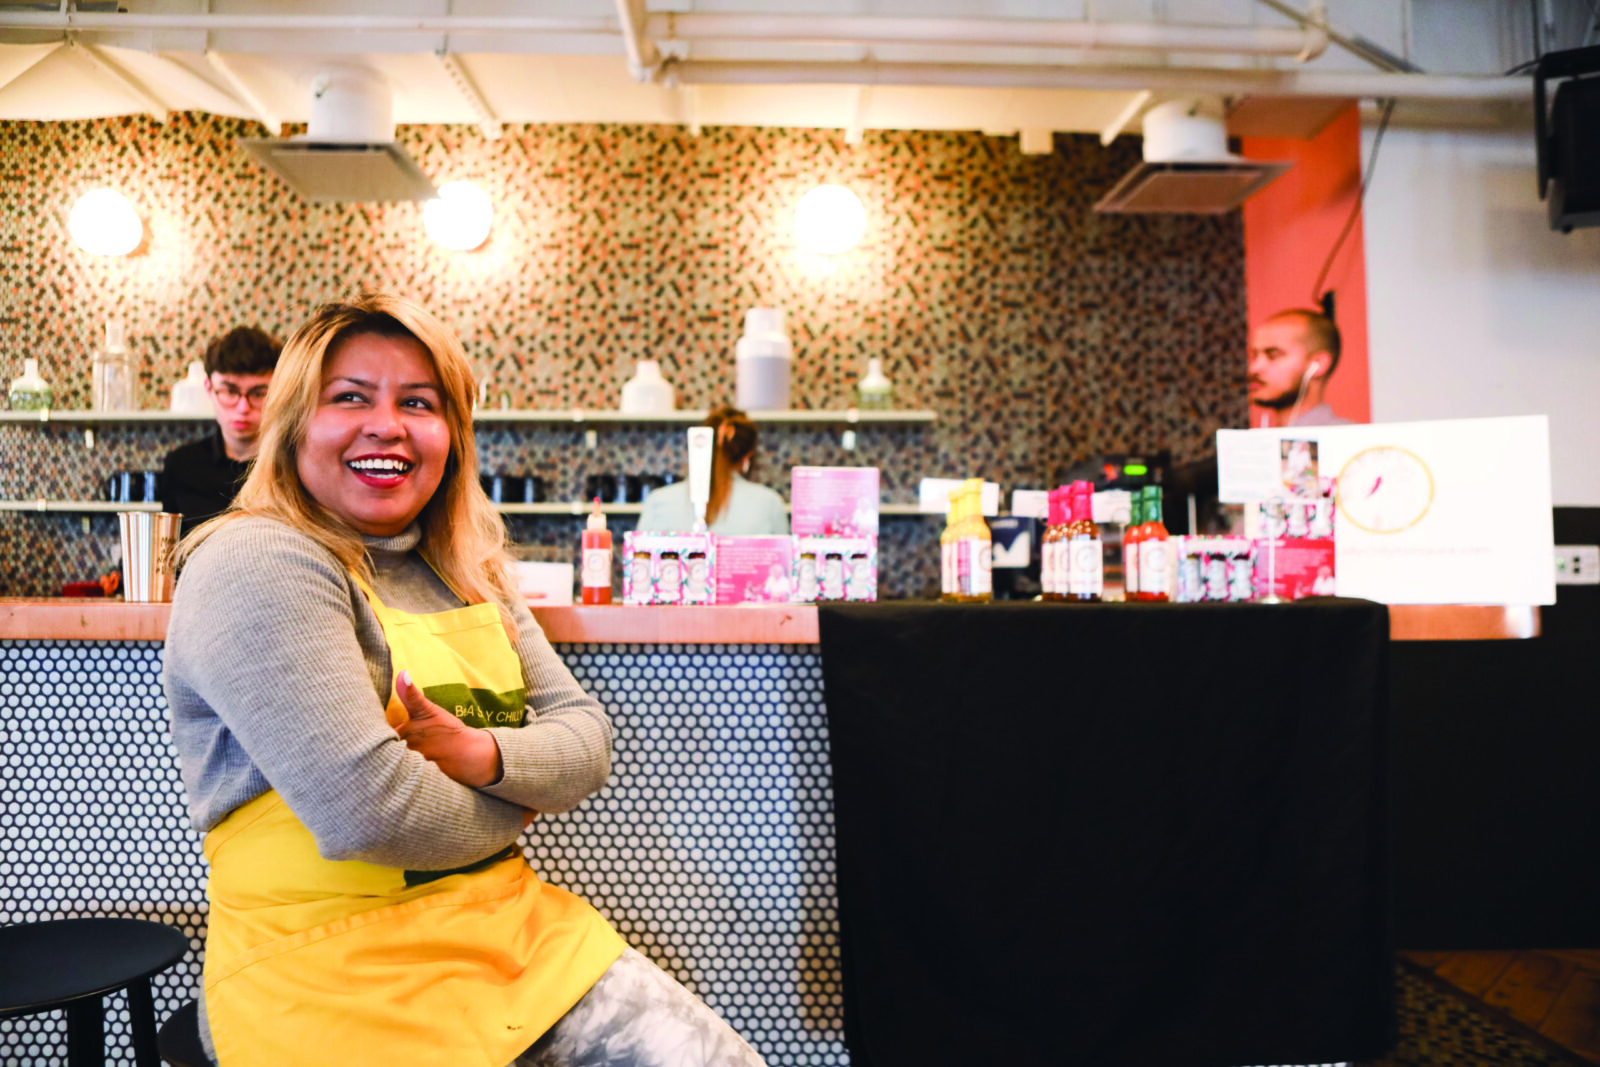 Sufia sits on a stool with her arms folded, smiling, wearing a yellow apron. On the bar behind her are many bottles of hot sauce, with some people busy working behind the bar.